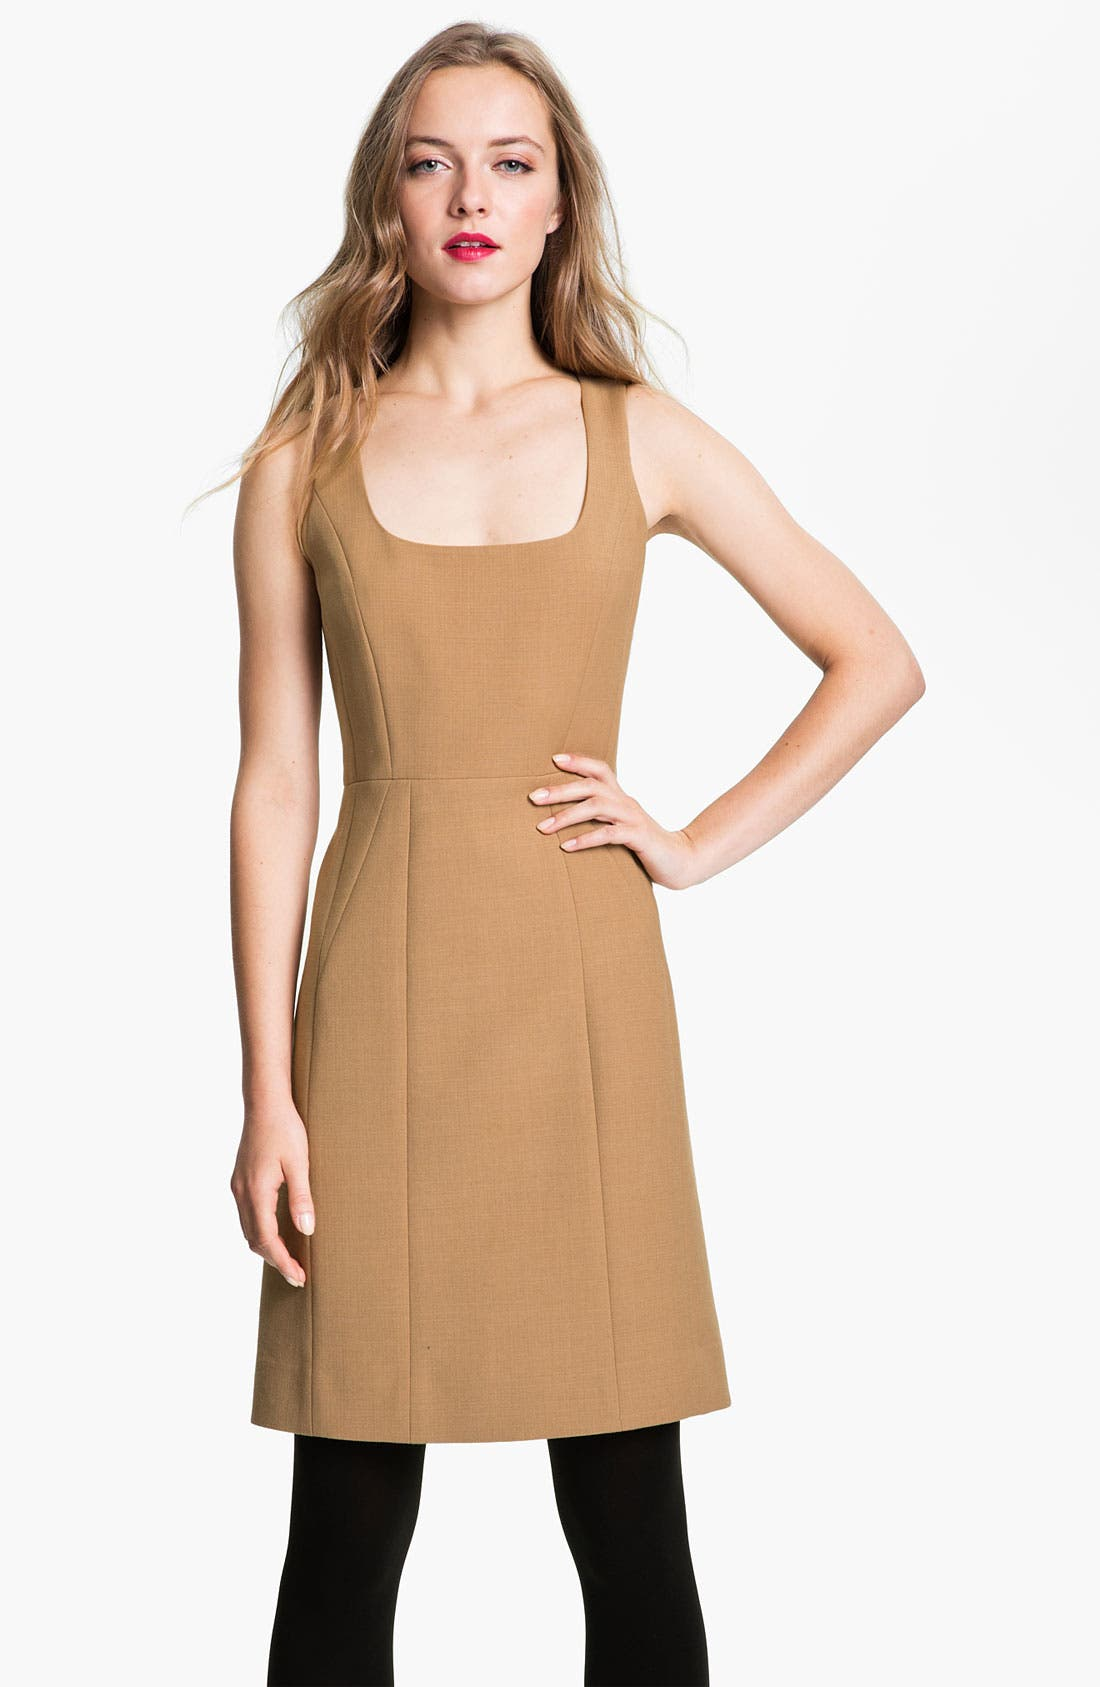 Main Image - Tory Burch 'Azalea' Stretch Wool Sheath Dress